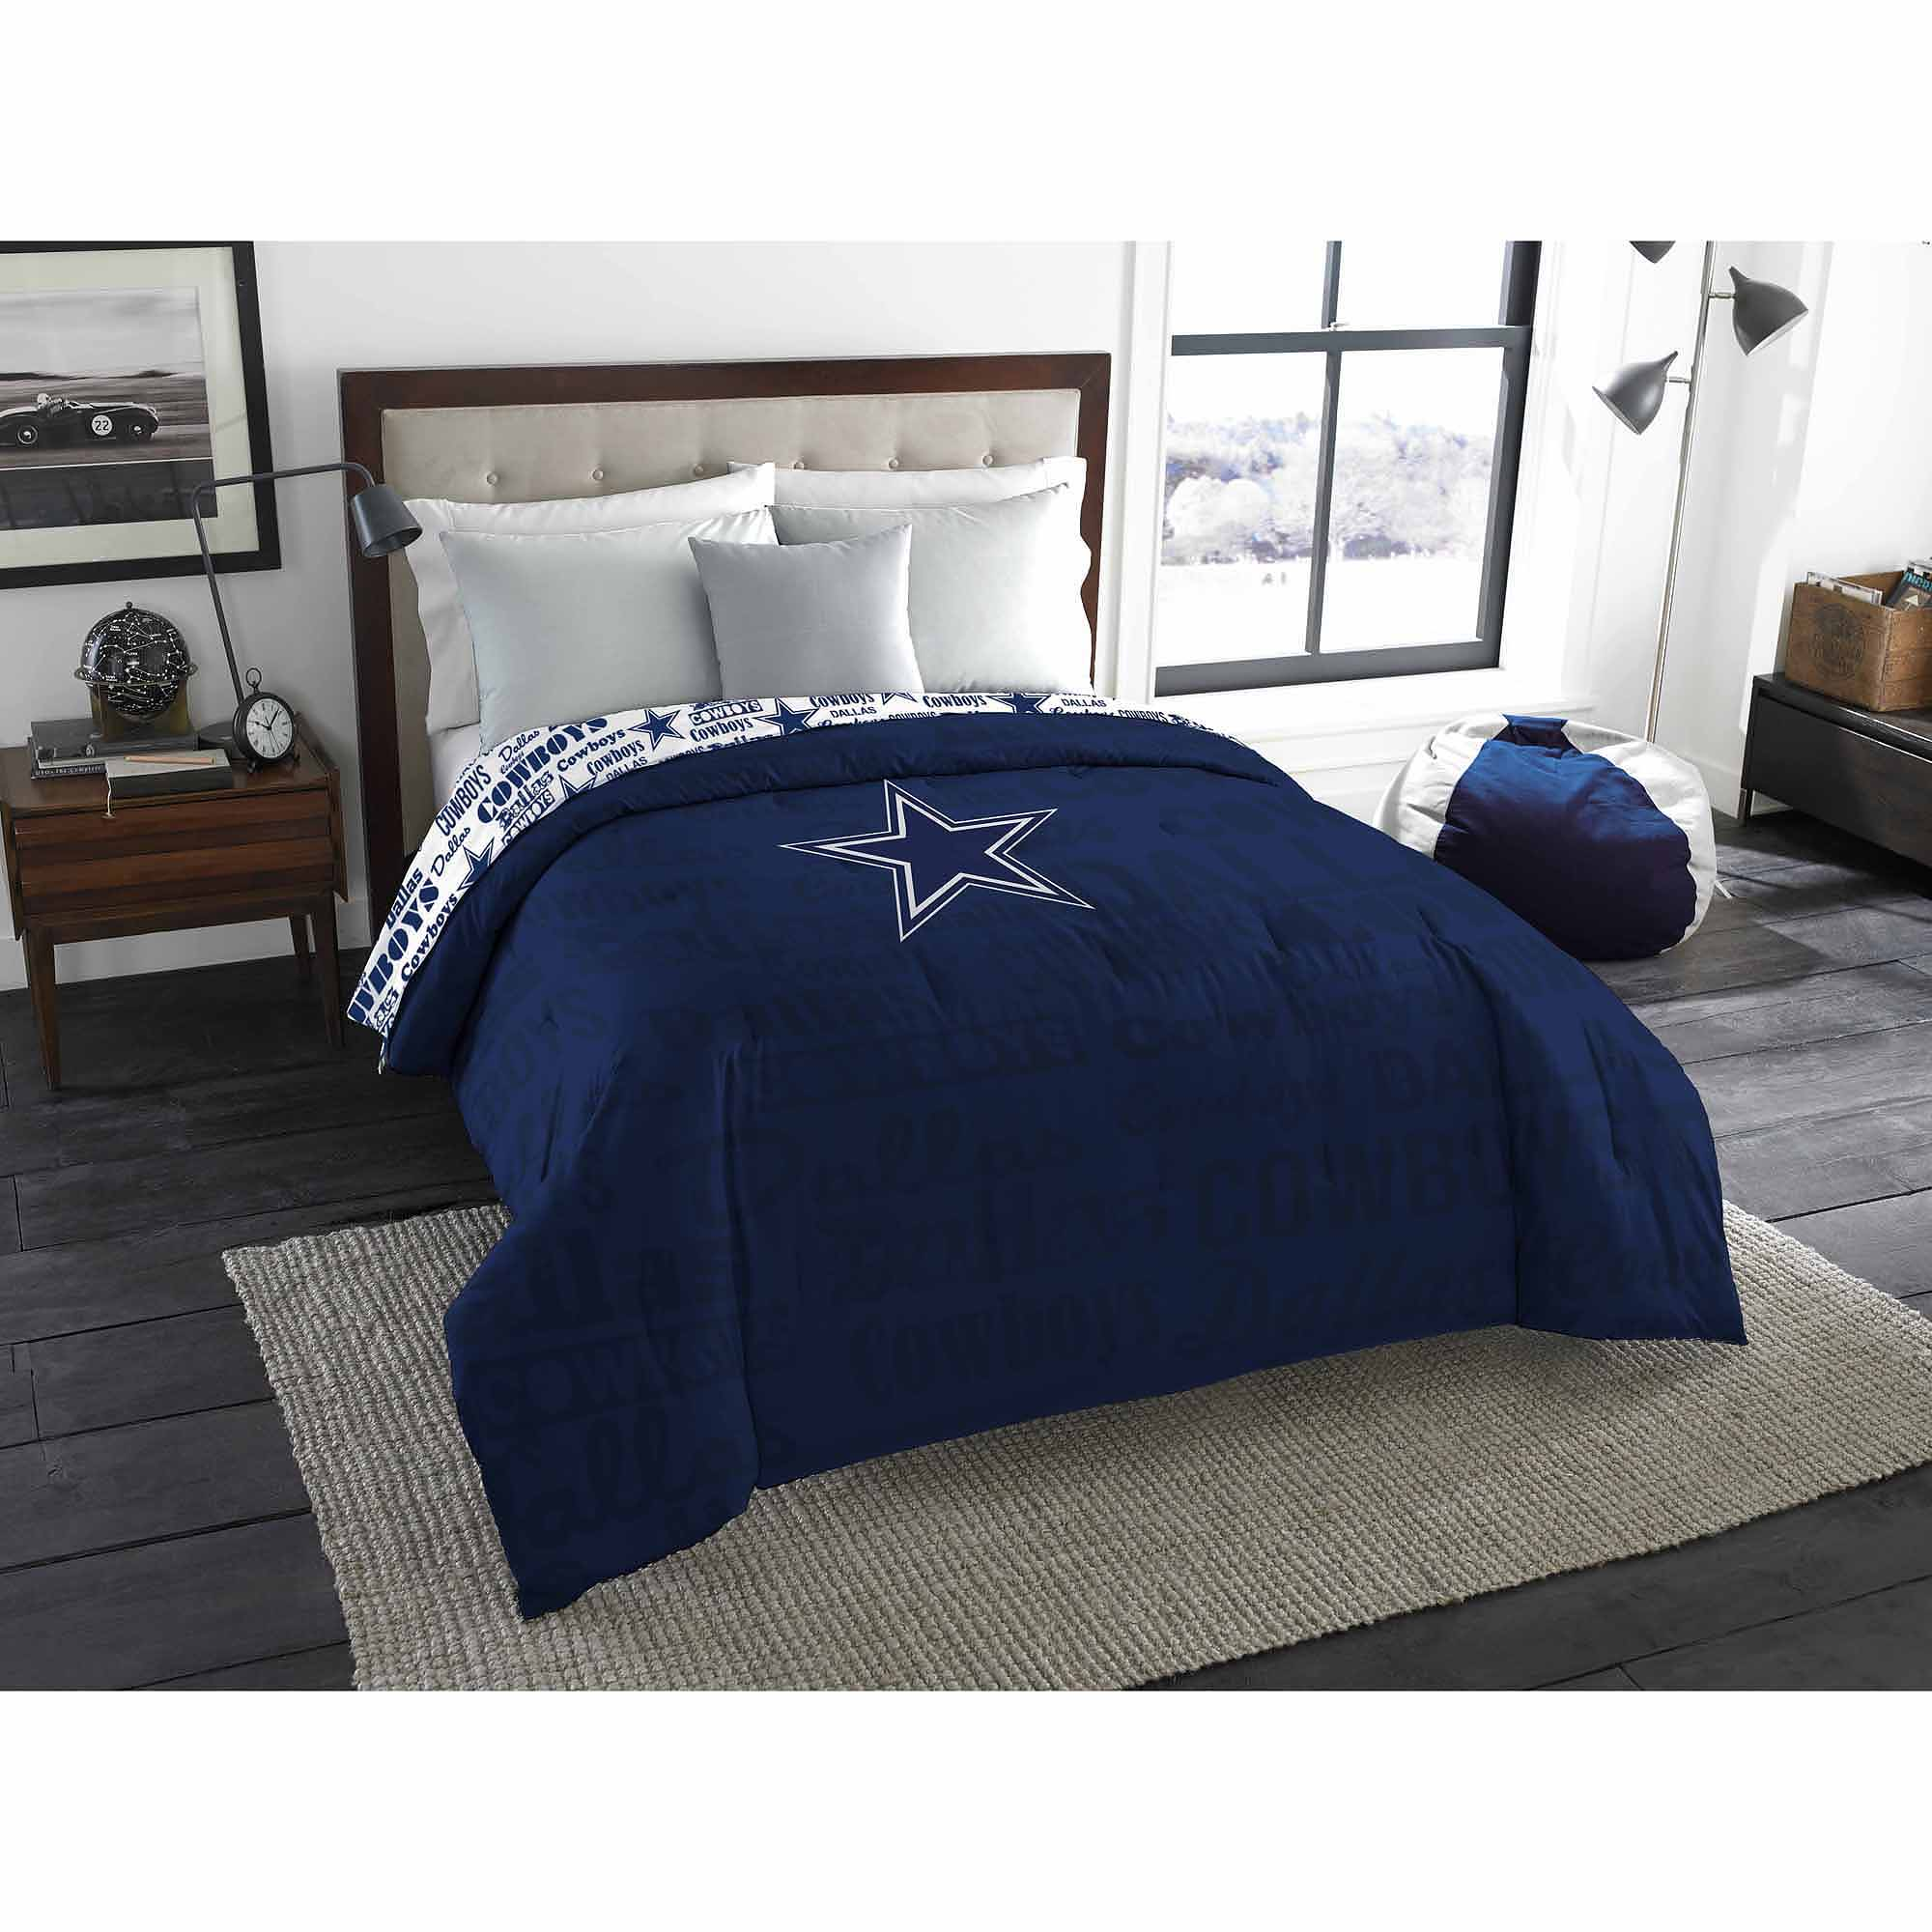 NFL Dallas Cowboys Twin/Full Bedding Comforter